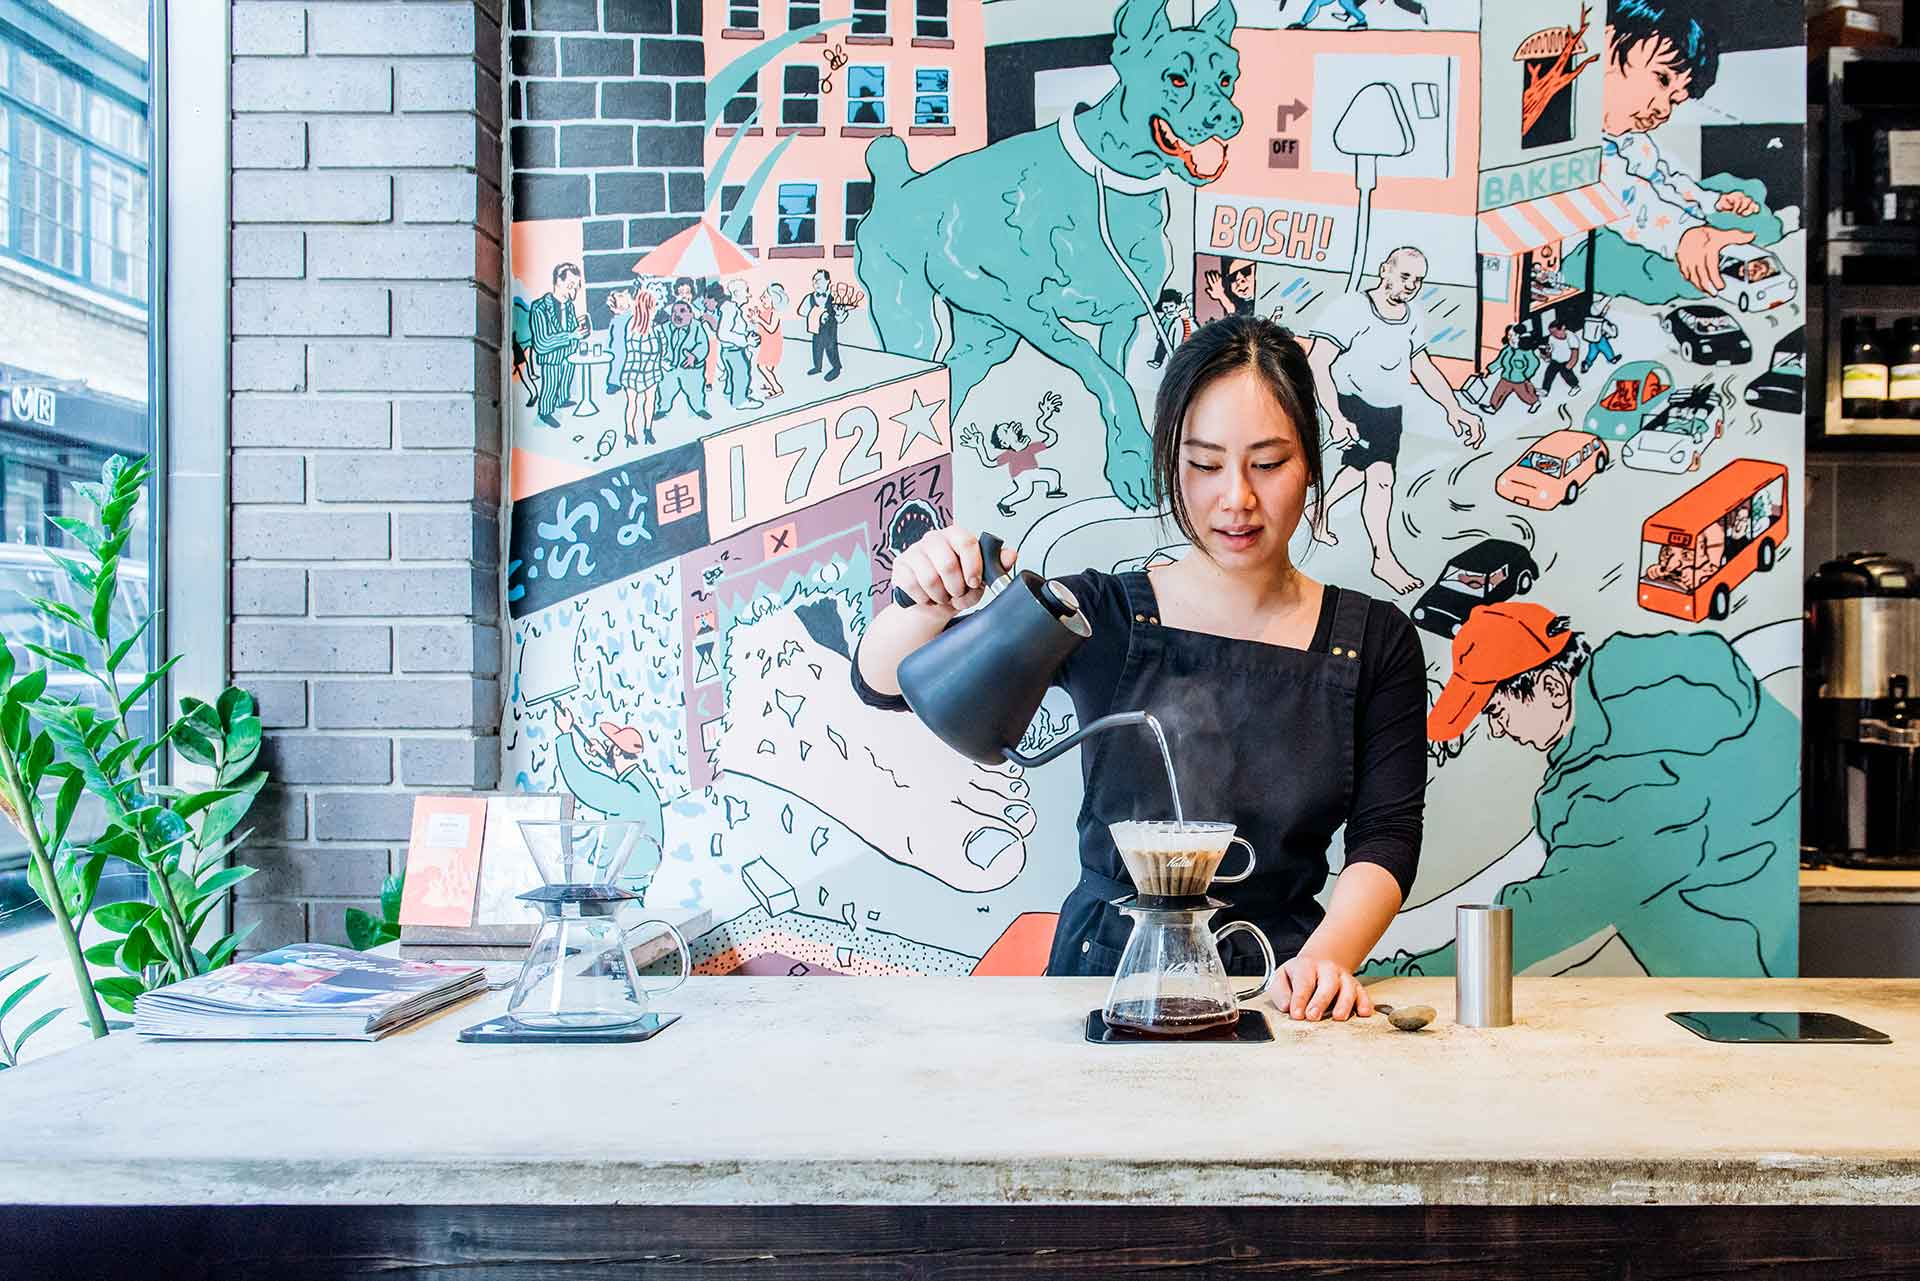 Kaffee-Events, Festival und Kalender: The London Coffee Festival 2020. CafCaf – Kaffee & Blog, Kaffeeblog